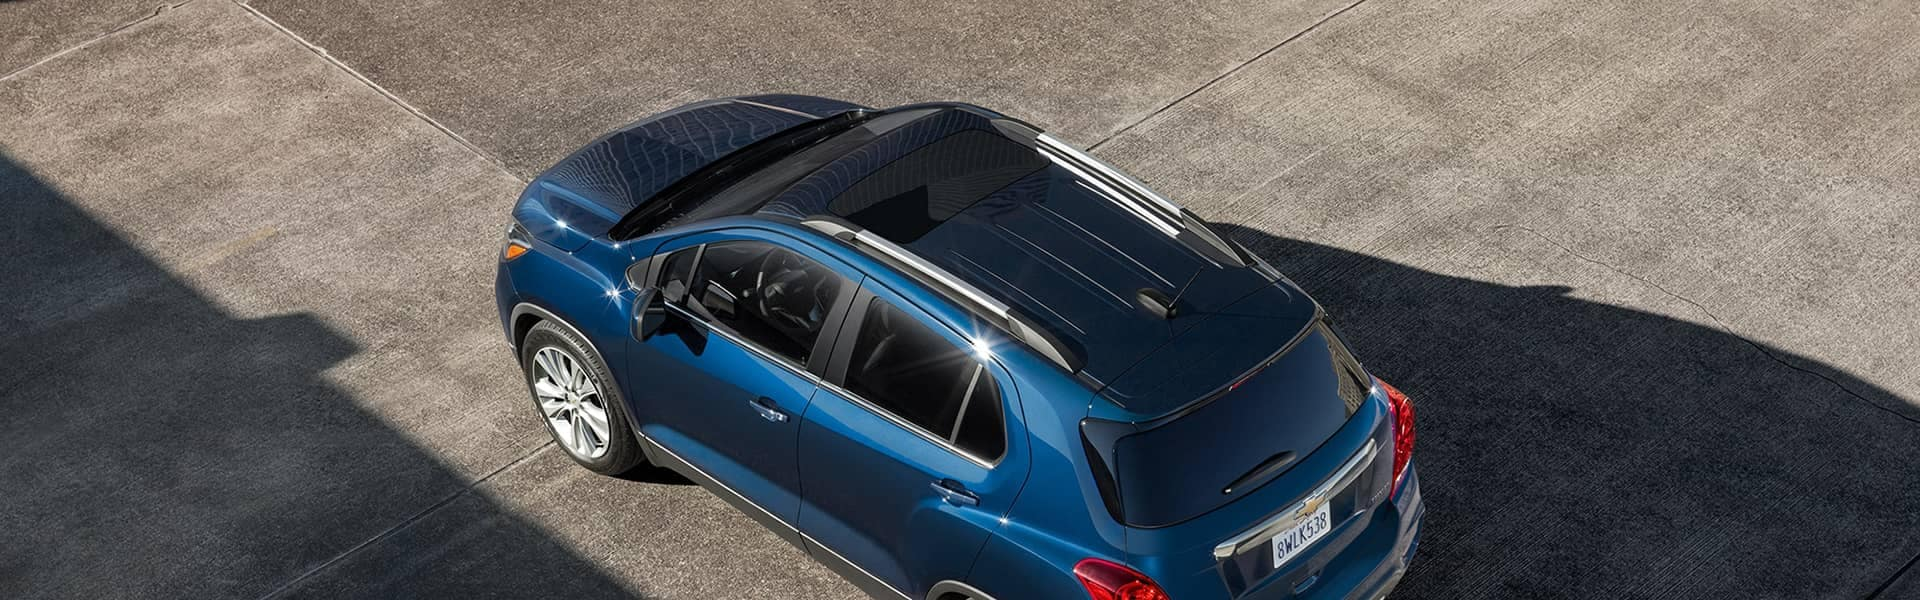 2019 Chevy Trax sunroof